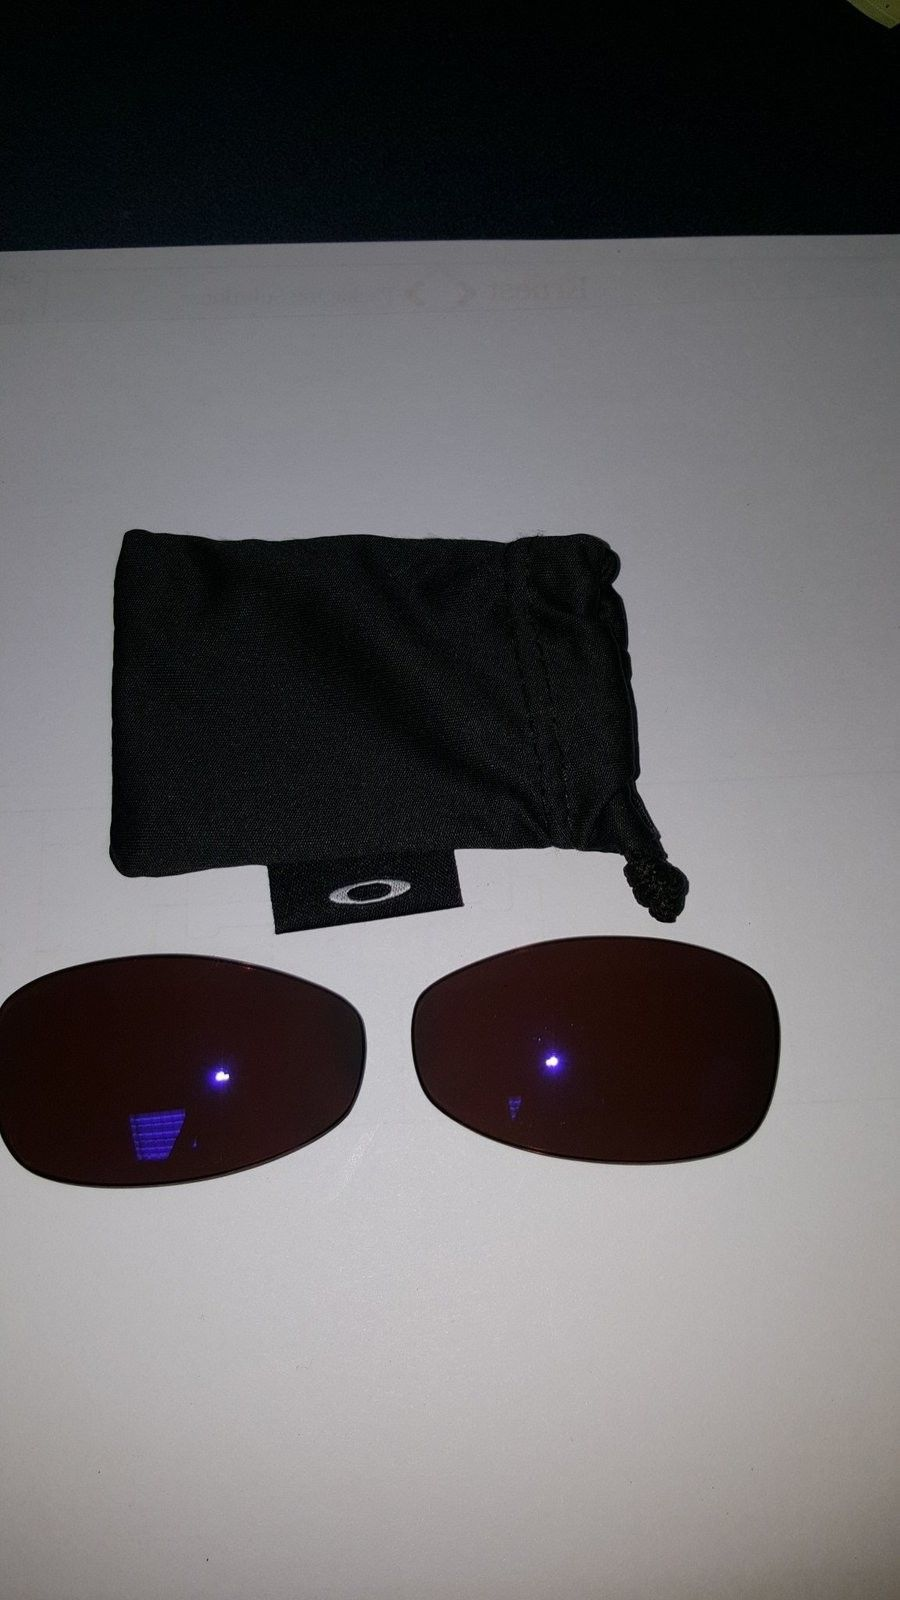 Juliet - 00 Red Iridium Polarized Lens - 95.00 Shipped - 20151027_113327.jpg.jpeg